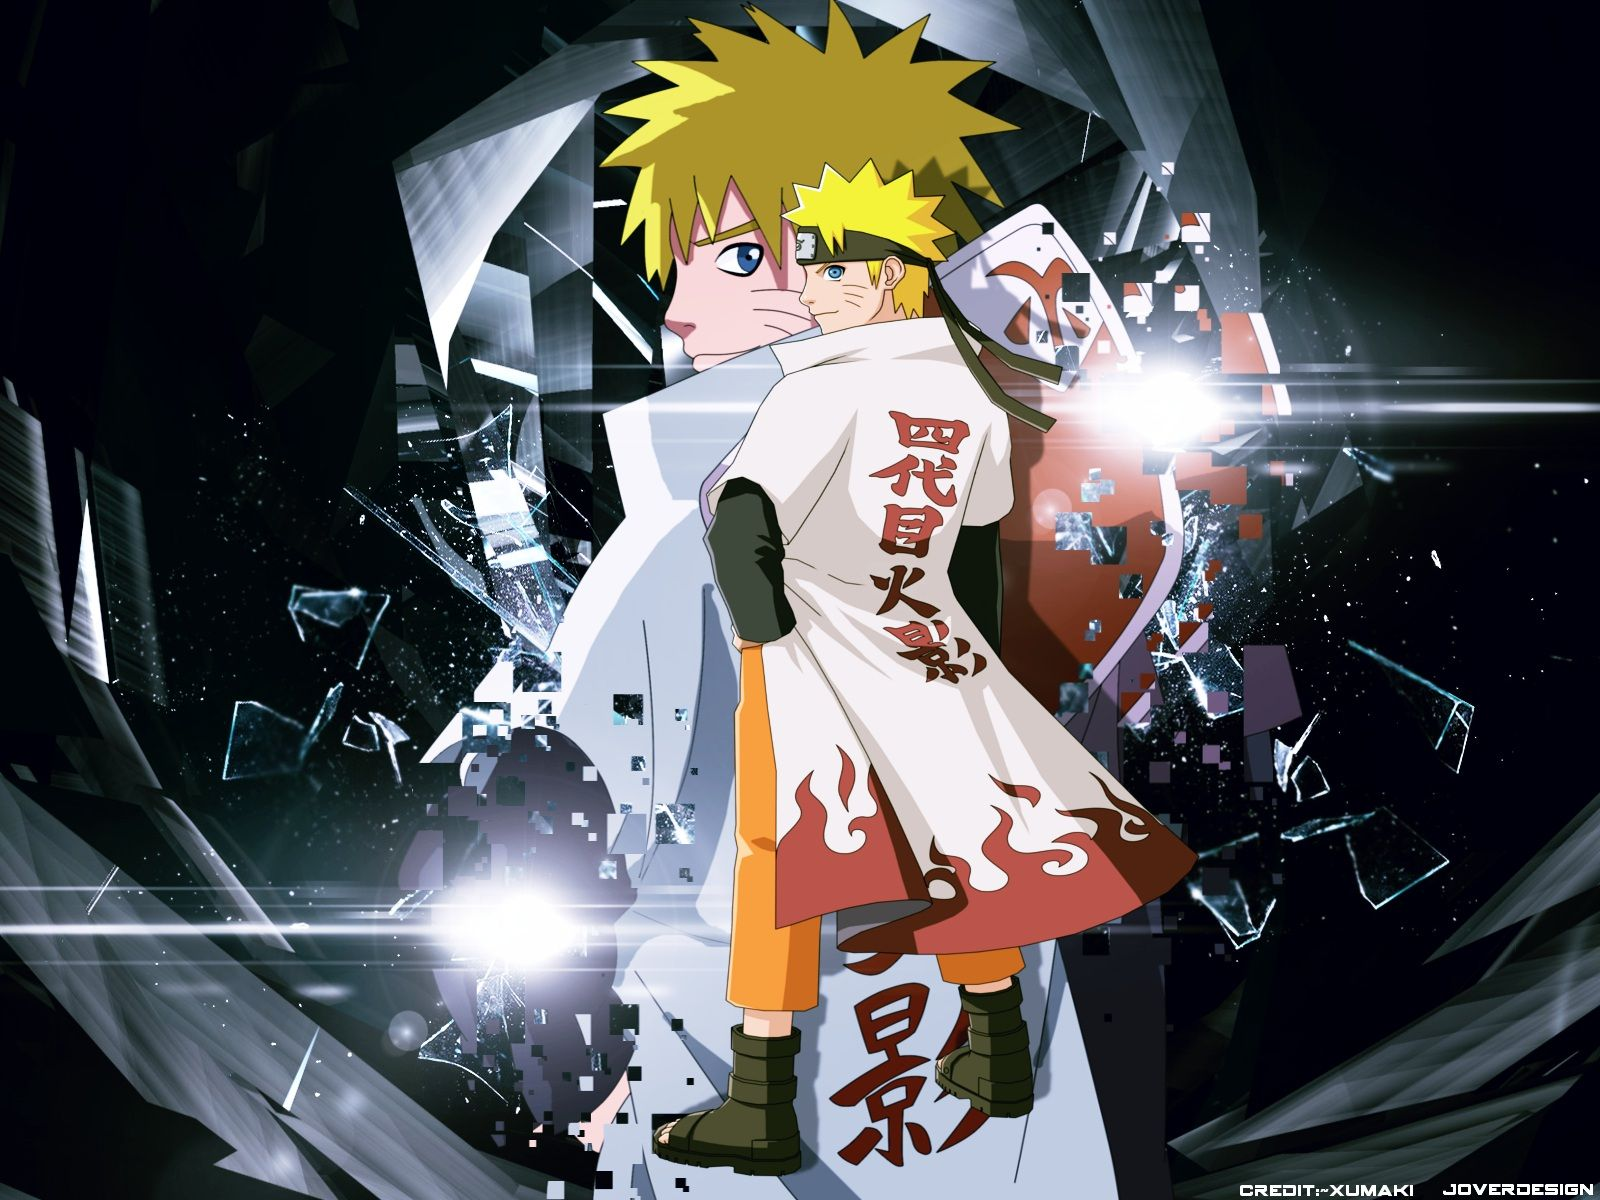 Naruto Shippuden Wallpaper Android with High Resolution Wallpaper